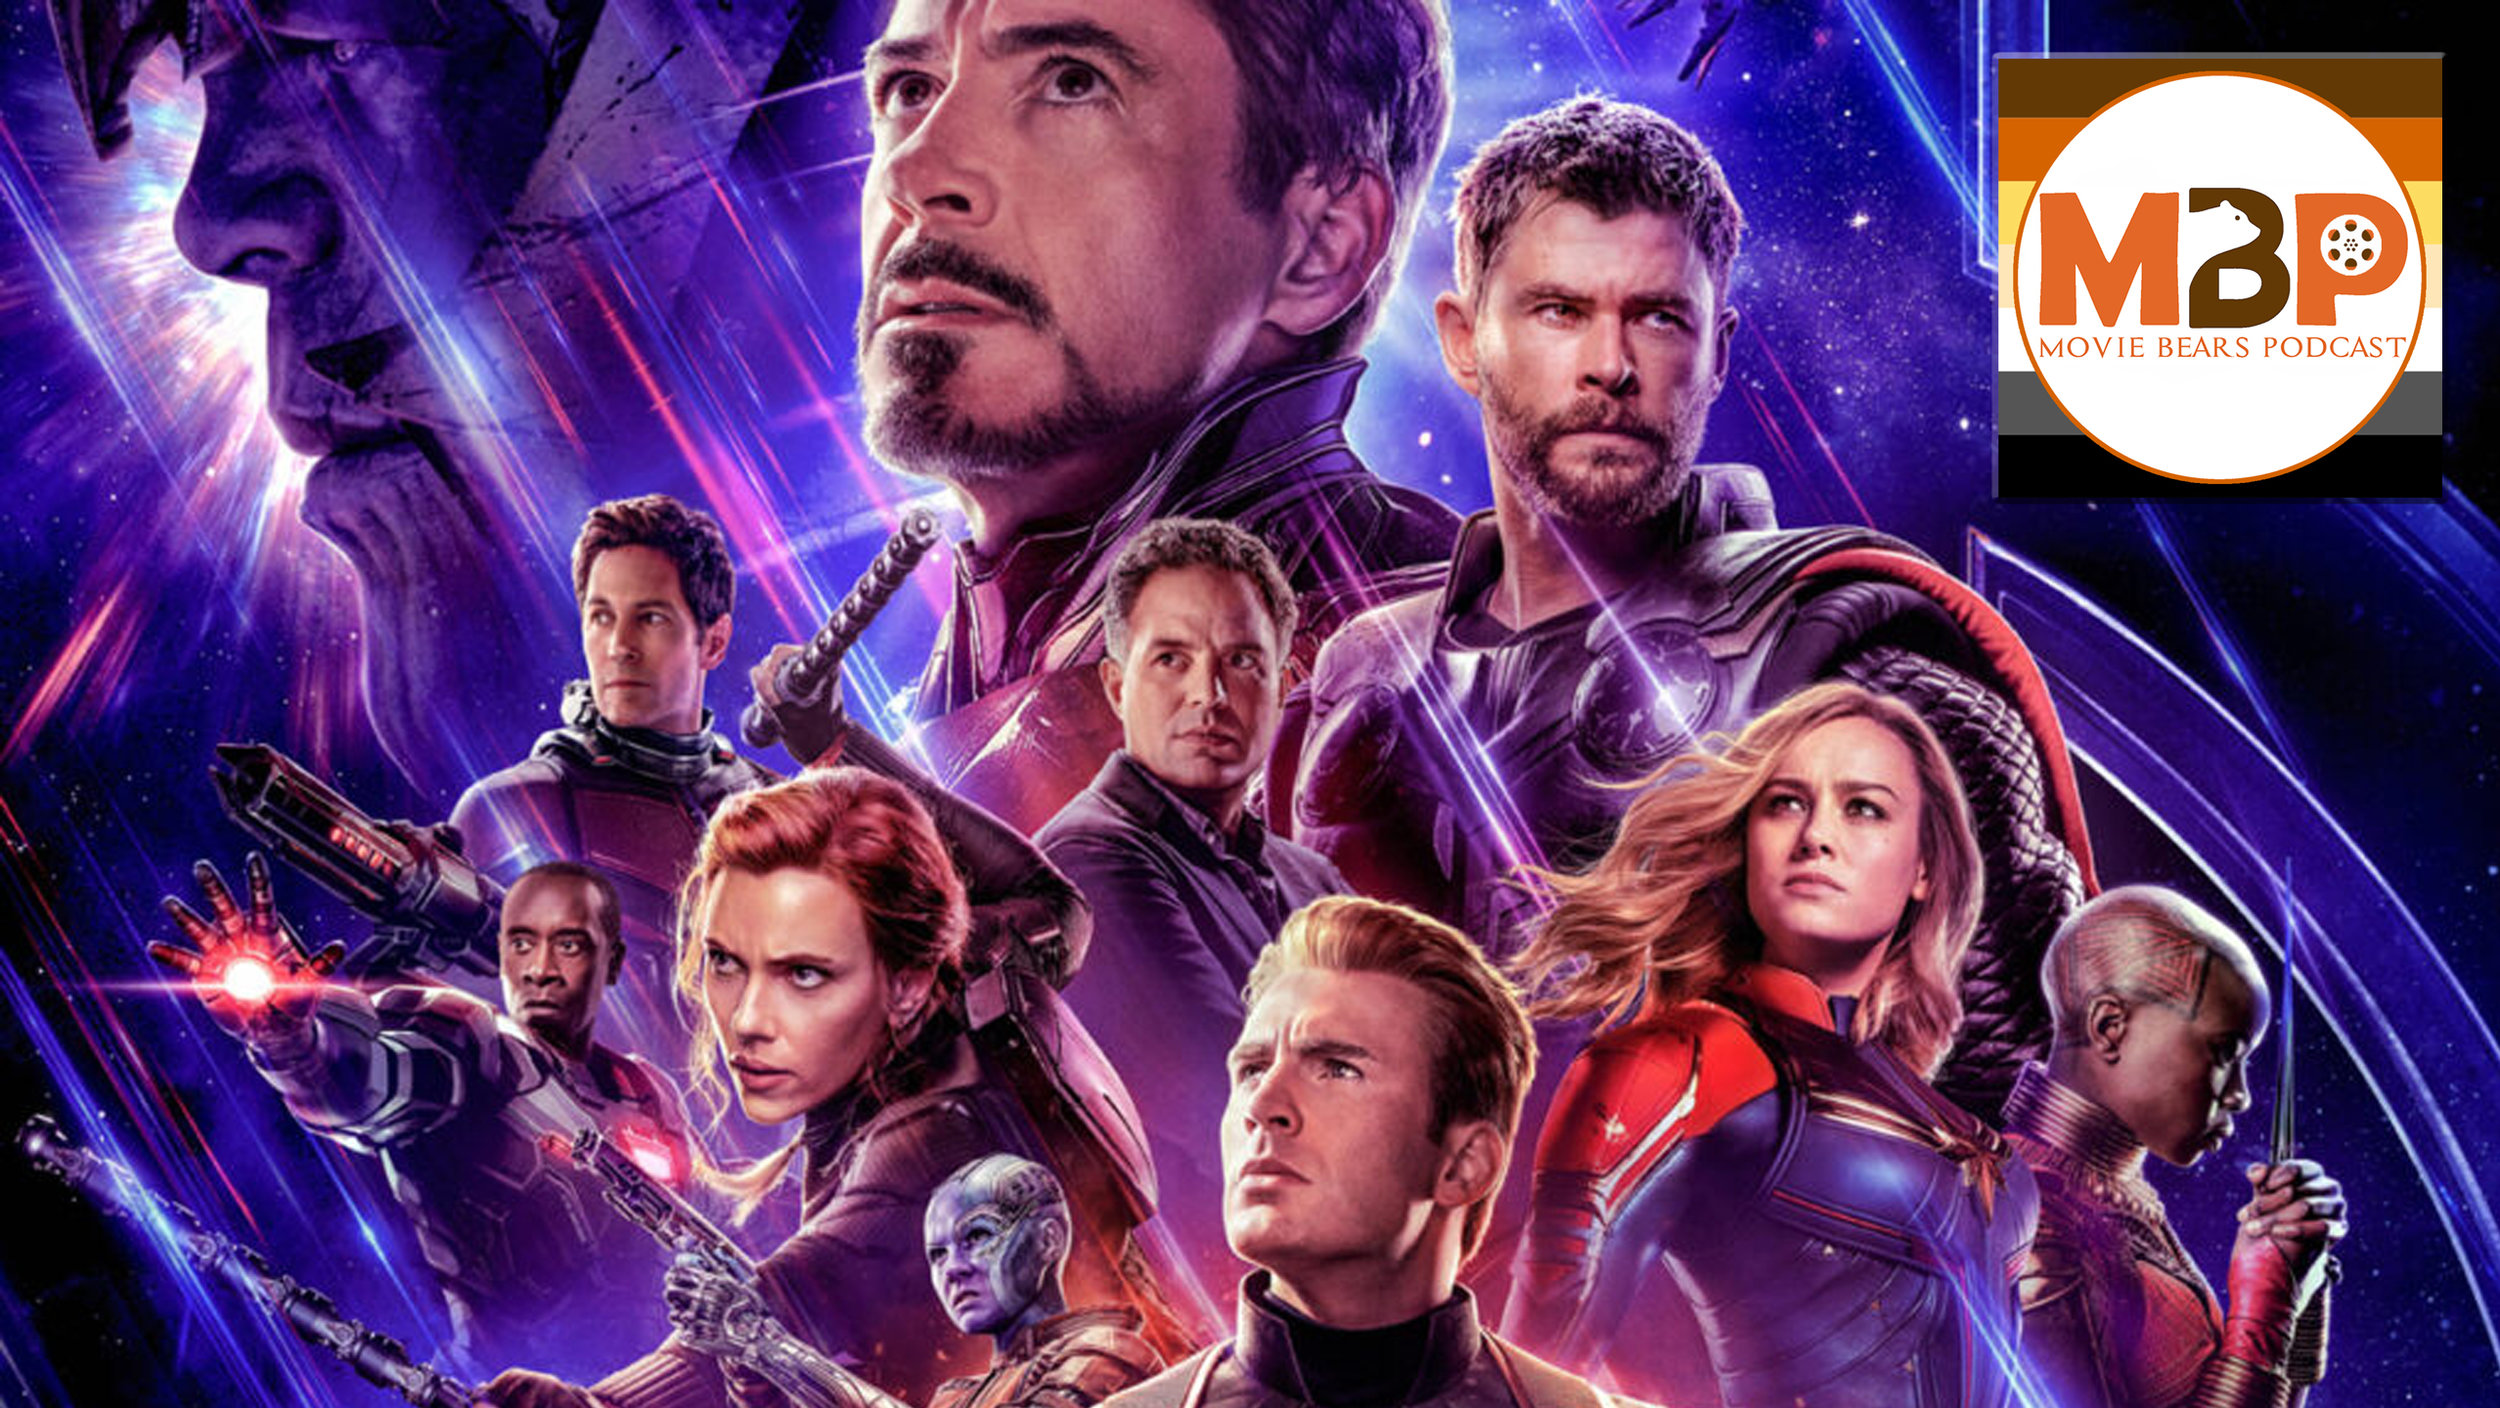 M   BP e3   20   -   'Avengers: Endgame'    (4/30/19)    'AVENGERS: ENDGAME' absolutely wrecked just about every box office record there is. Everyone's talking about it, so we figured… why not get in on some of this action? In this episode, have a listen to our review of the film. We'll start off with our spoiler-free section and then give plenty of notice for you to skip to, or over, our all-out spoiler discussion.